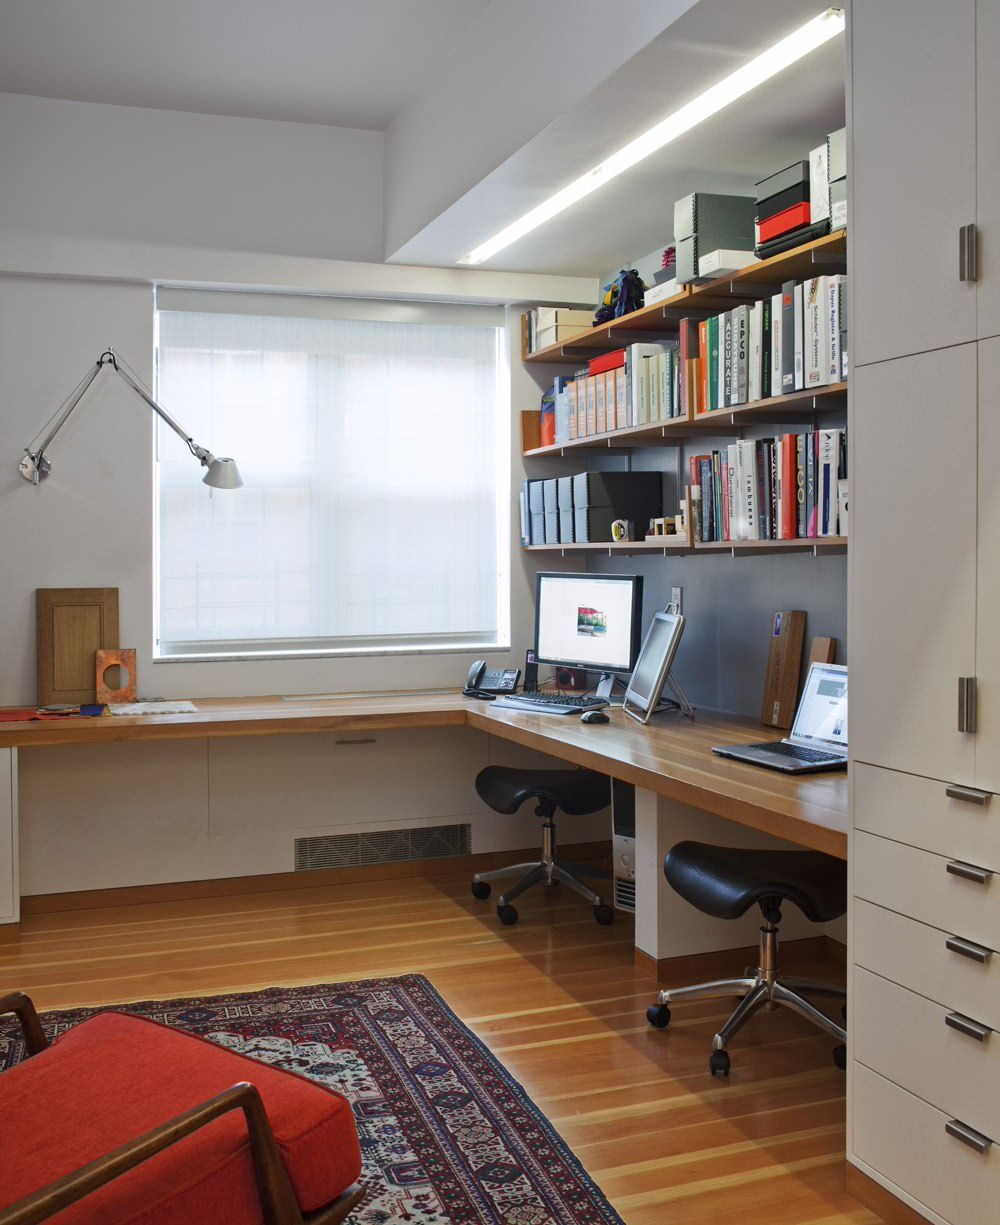 Wall lamp with twist mechanism in a home office